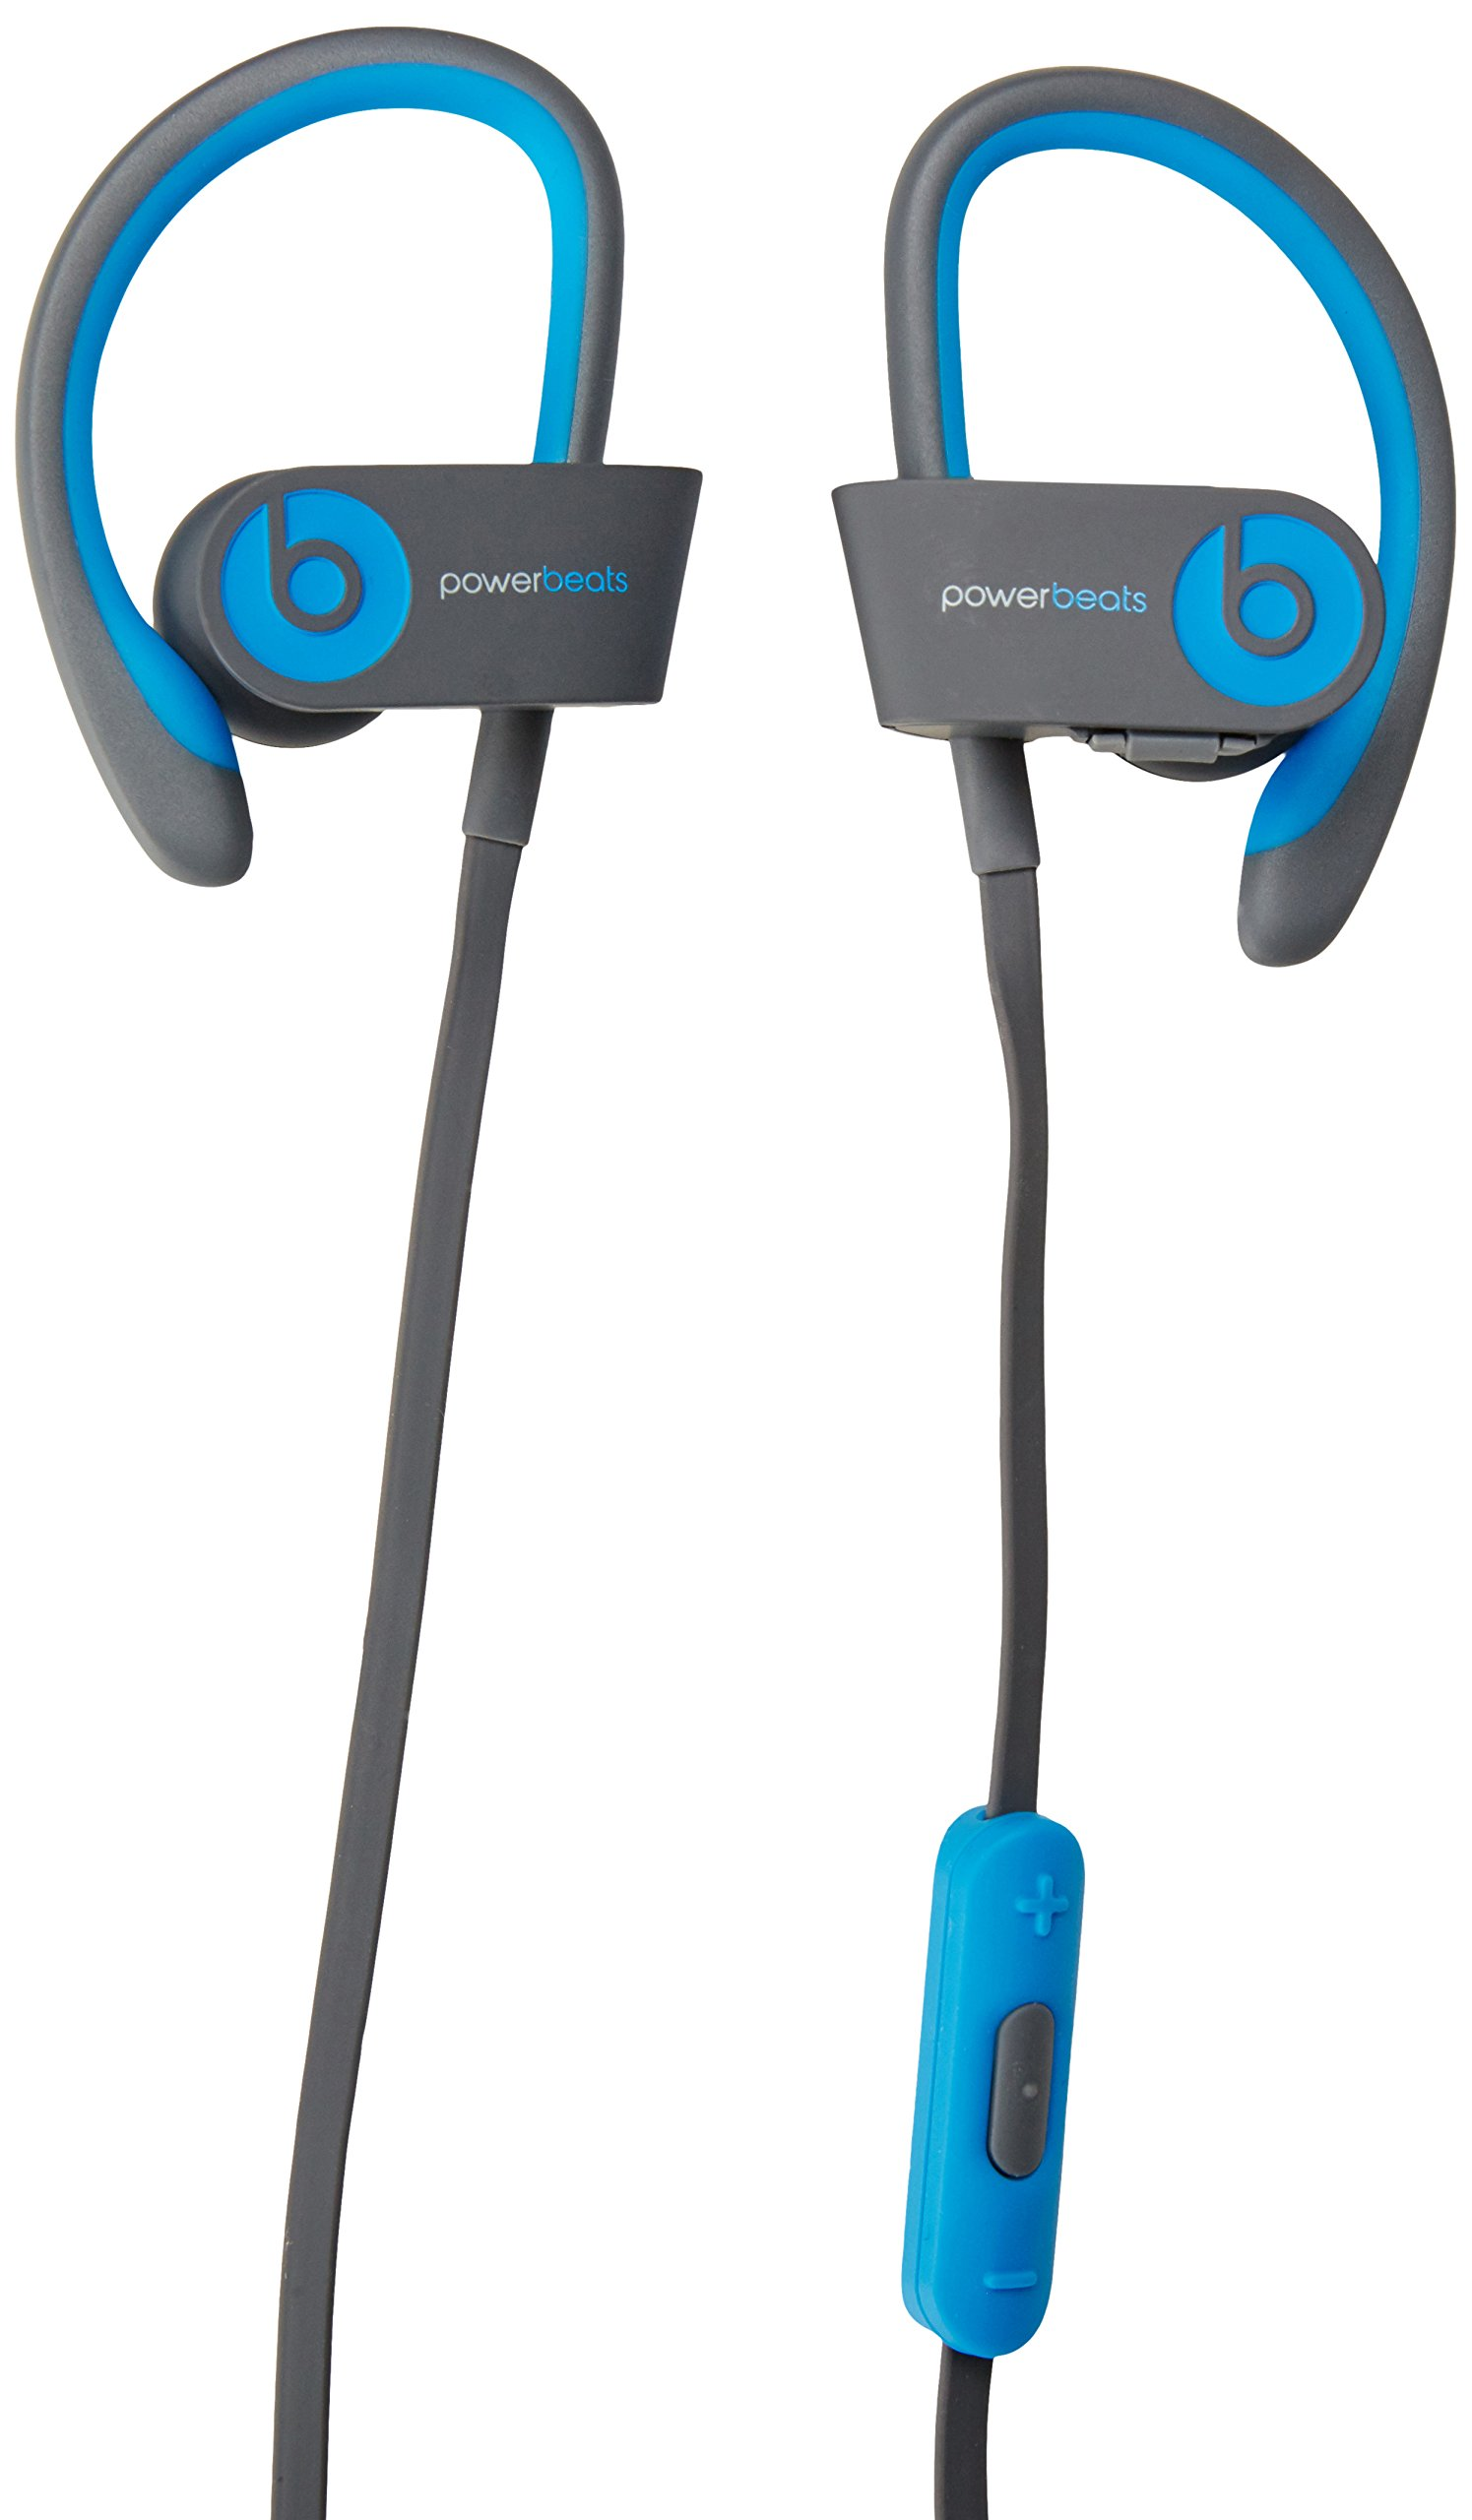 Powerbeats2 Wireless In-Ear Headphone, Active Collection - Flash Blue (Old Model) by Beats